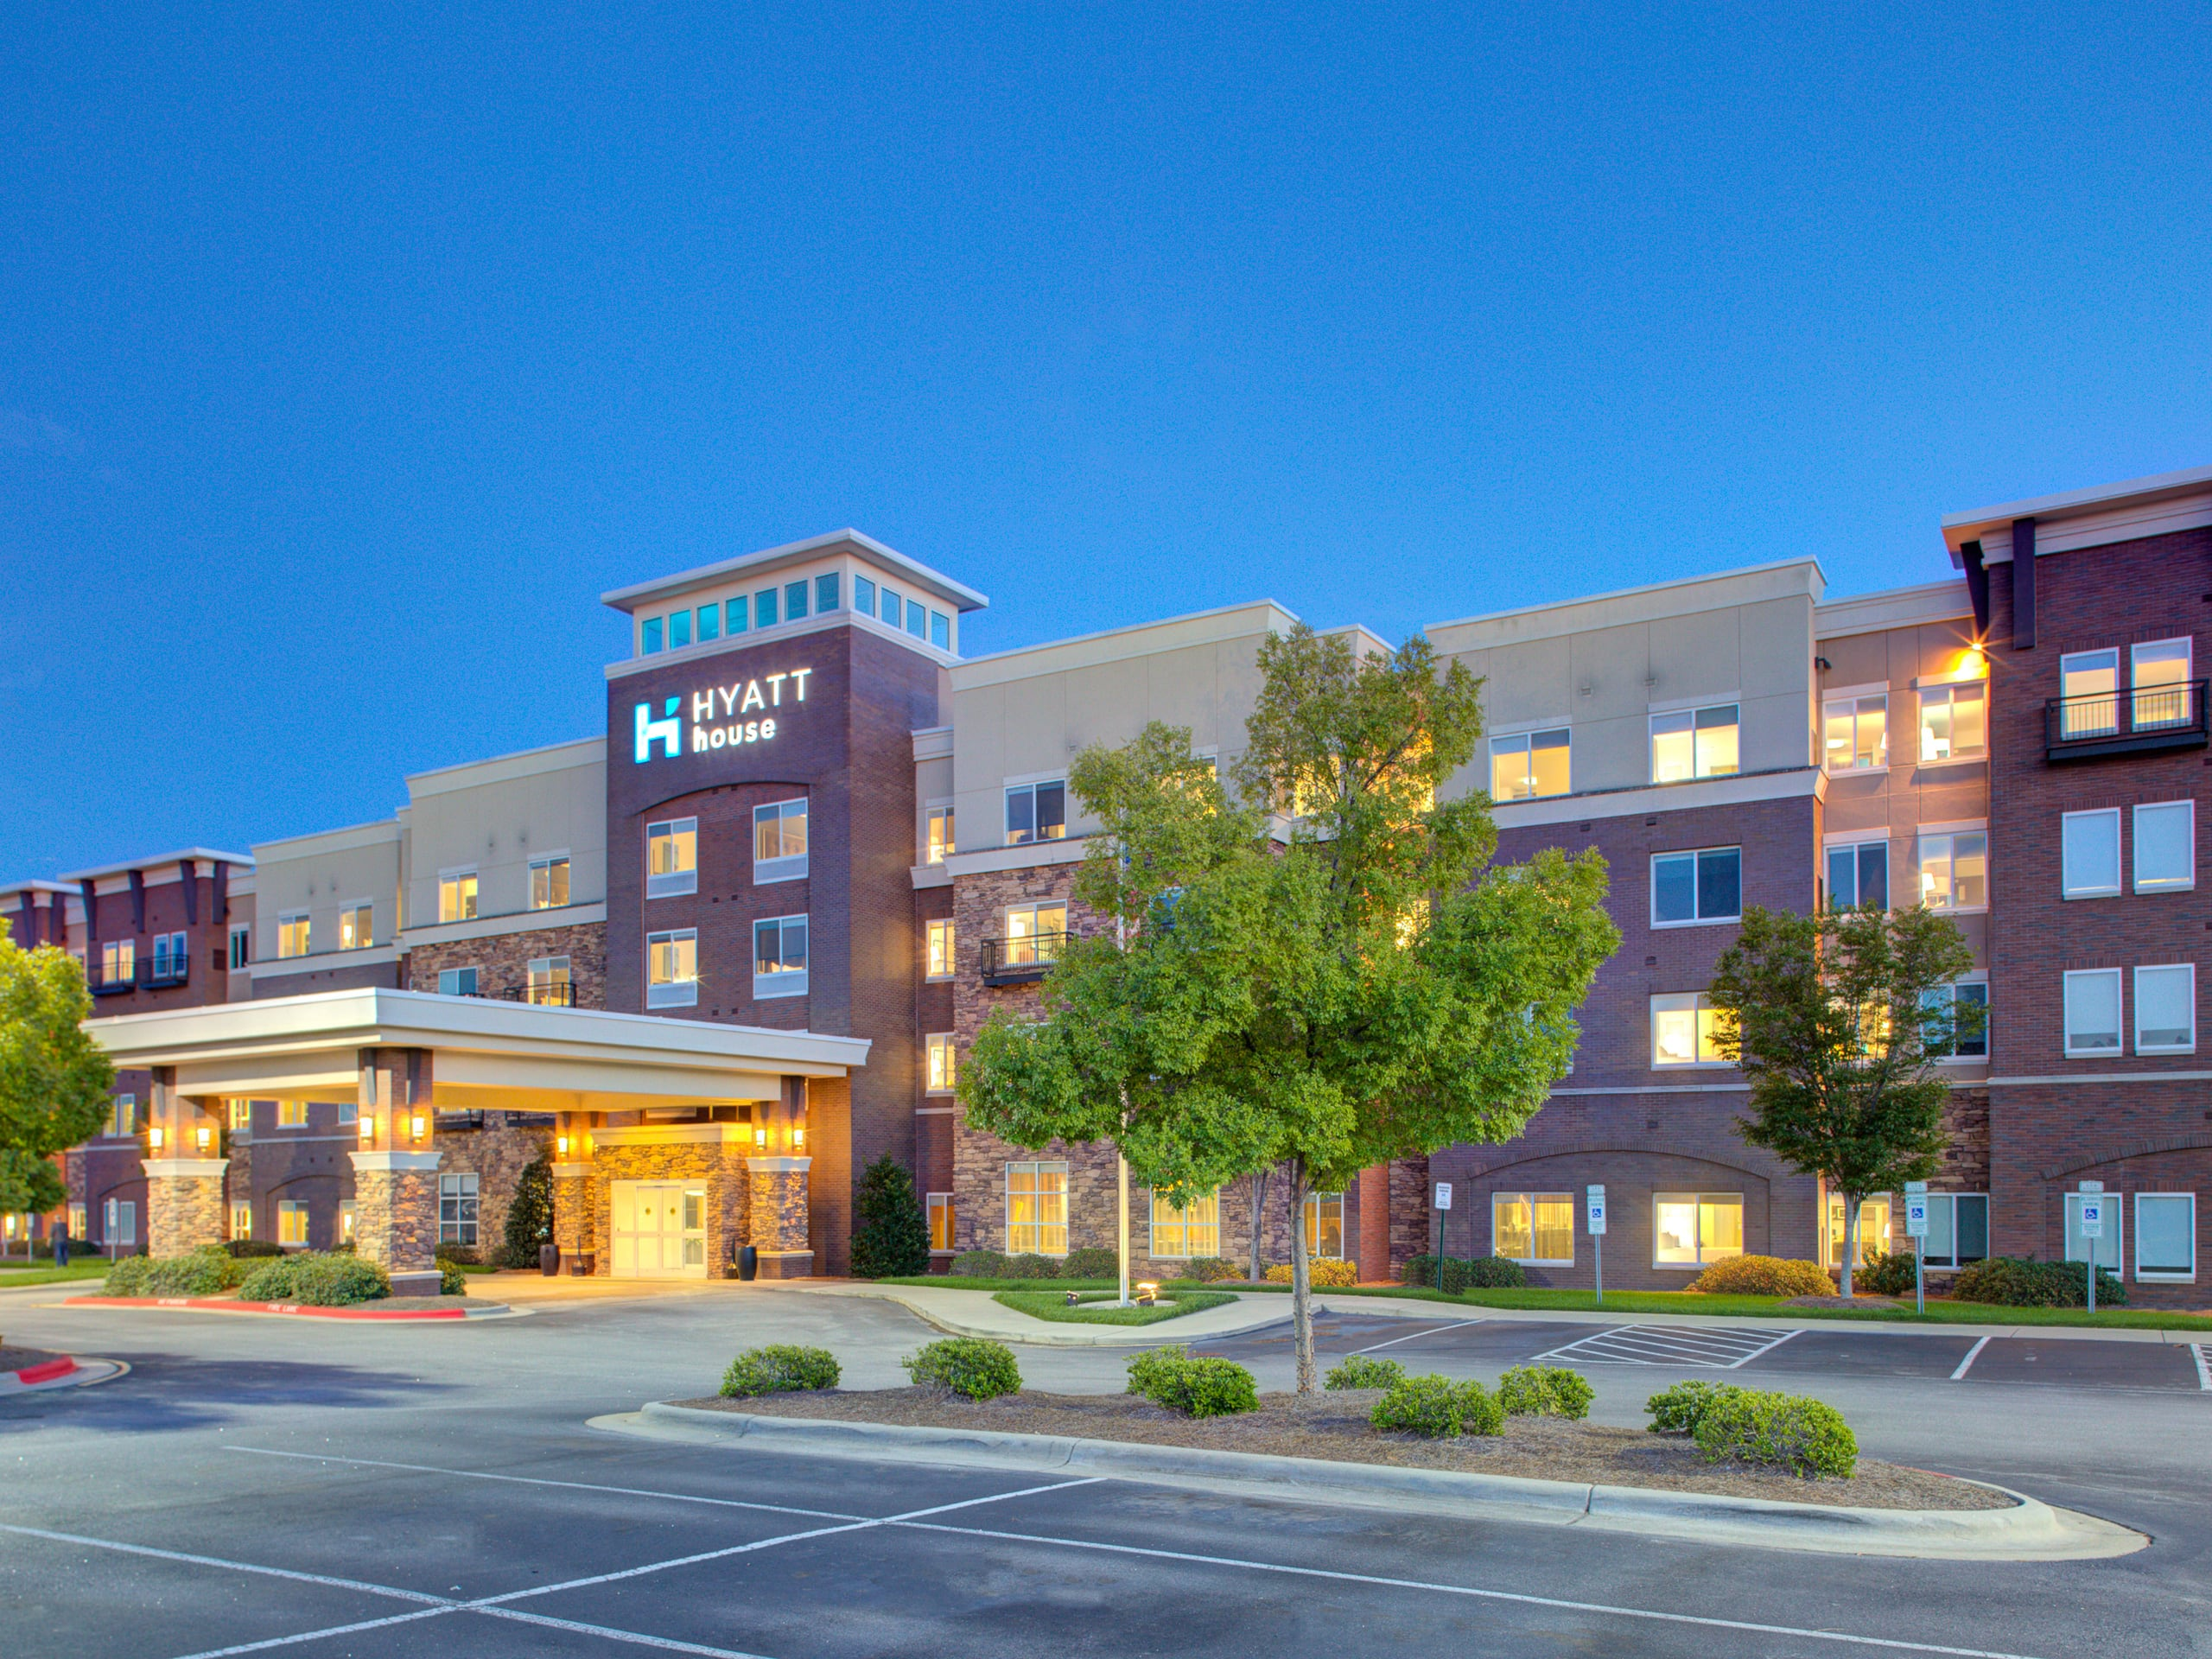 extended stay hotel near raleigh durham airport hyatt house rh hyatt com